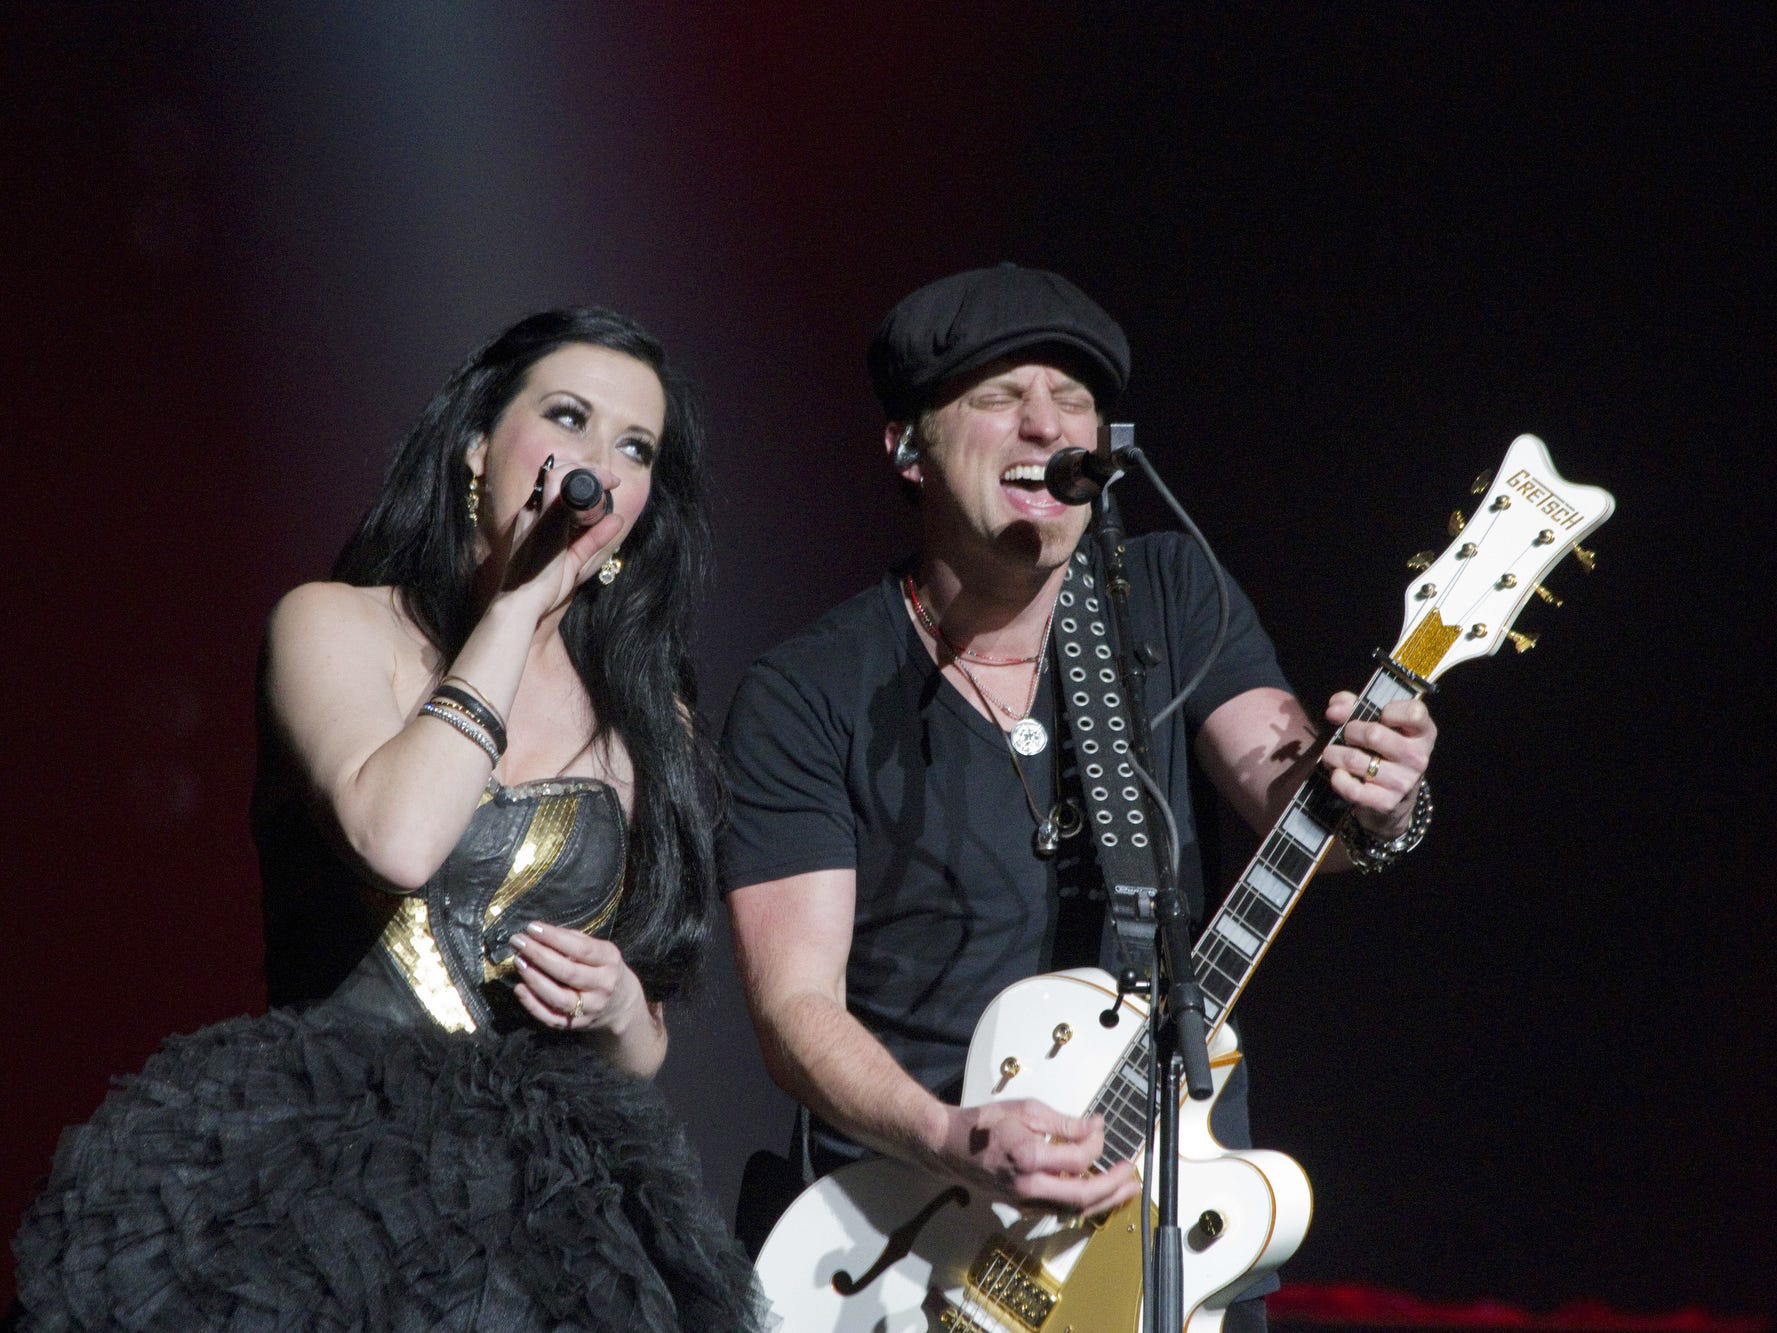 Thompson Square is scheduled to play the Budweiser Forever Country Stage at CMA Fest 2019.